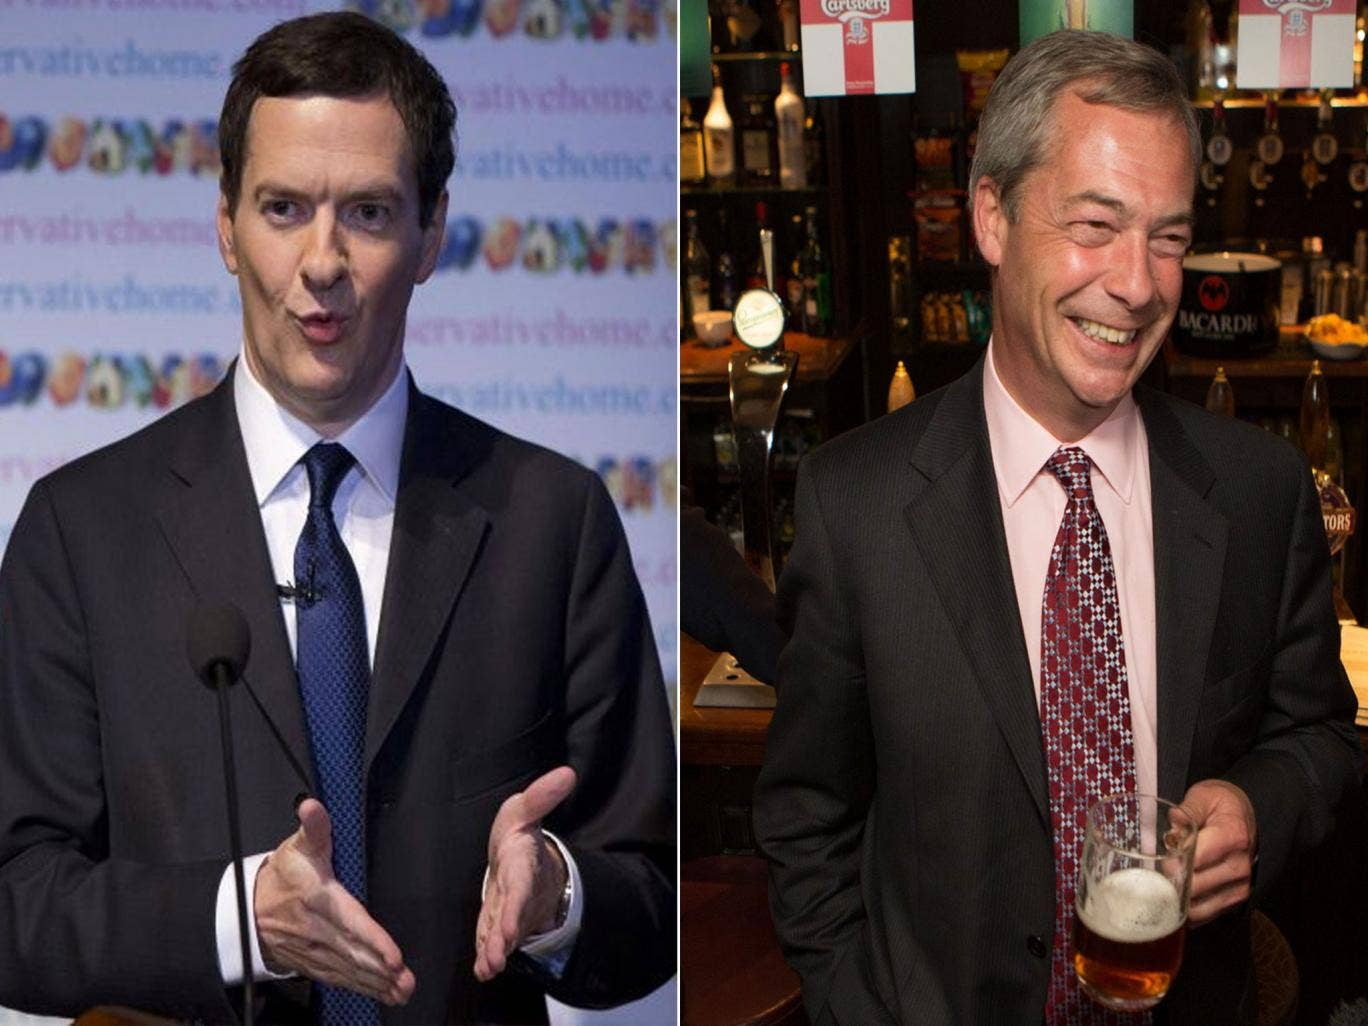 """George Osborne has said he respects Nigel Farage and urged the Conservatives to listen to the """"anger and anxiety"""" across the country after the Ukip leader delivered the political earthquake he had promised in the local elections."""